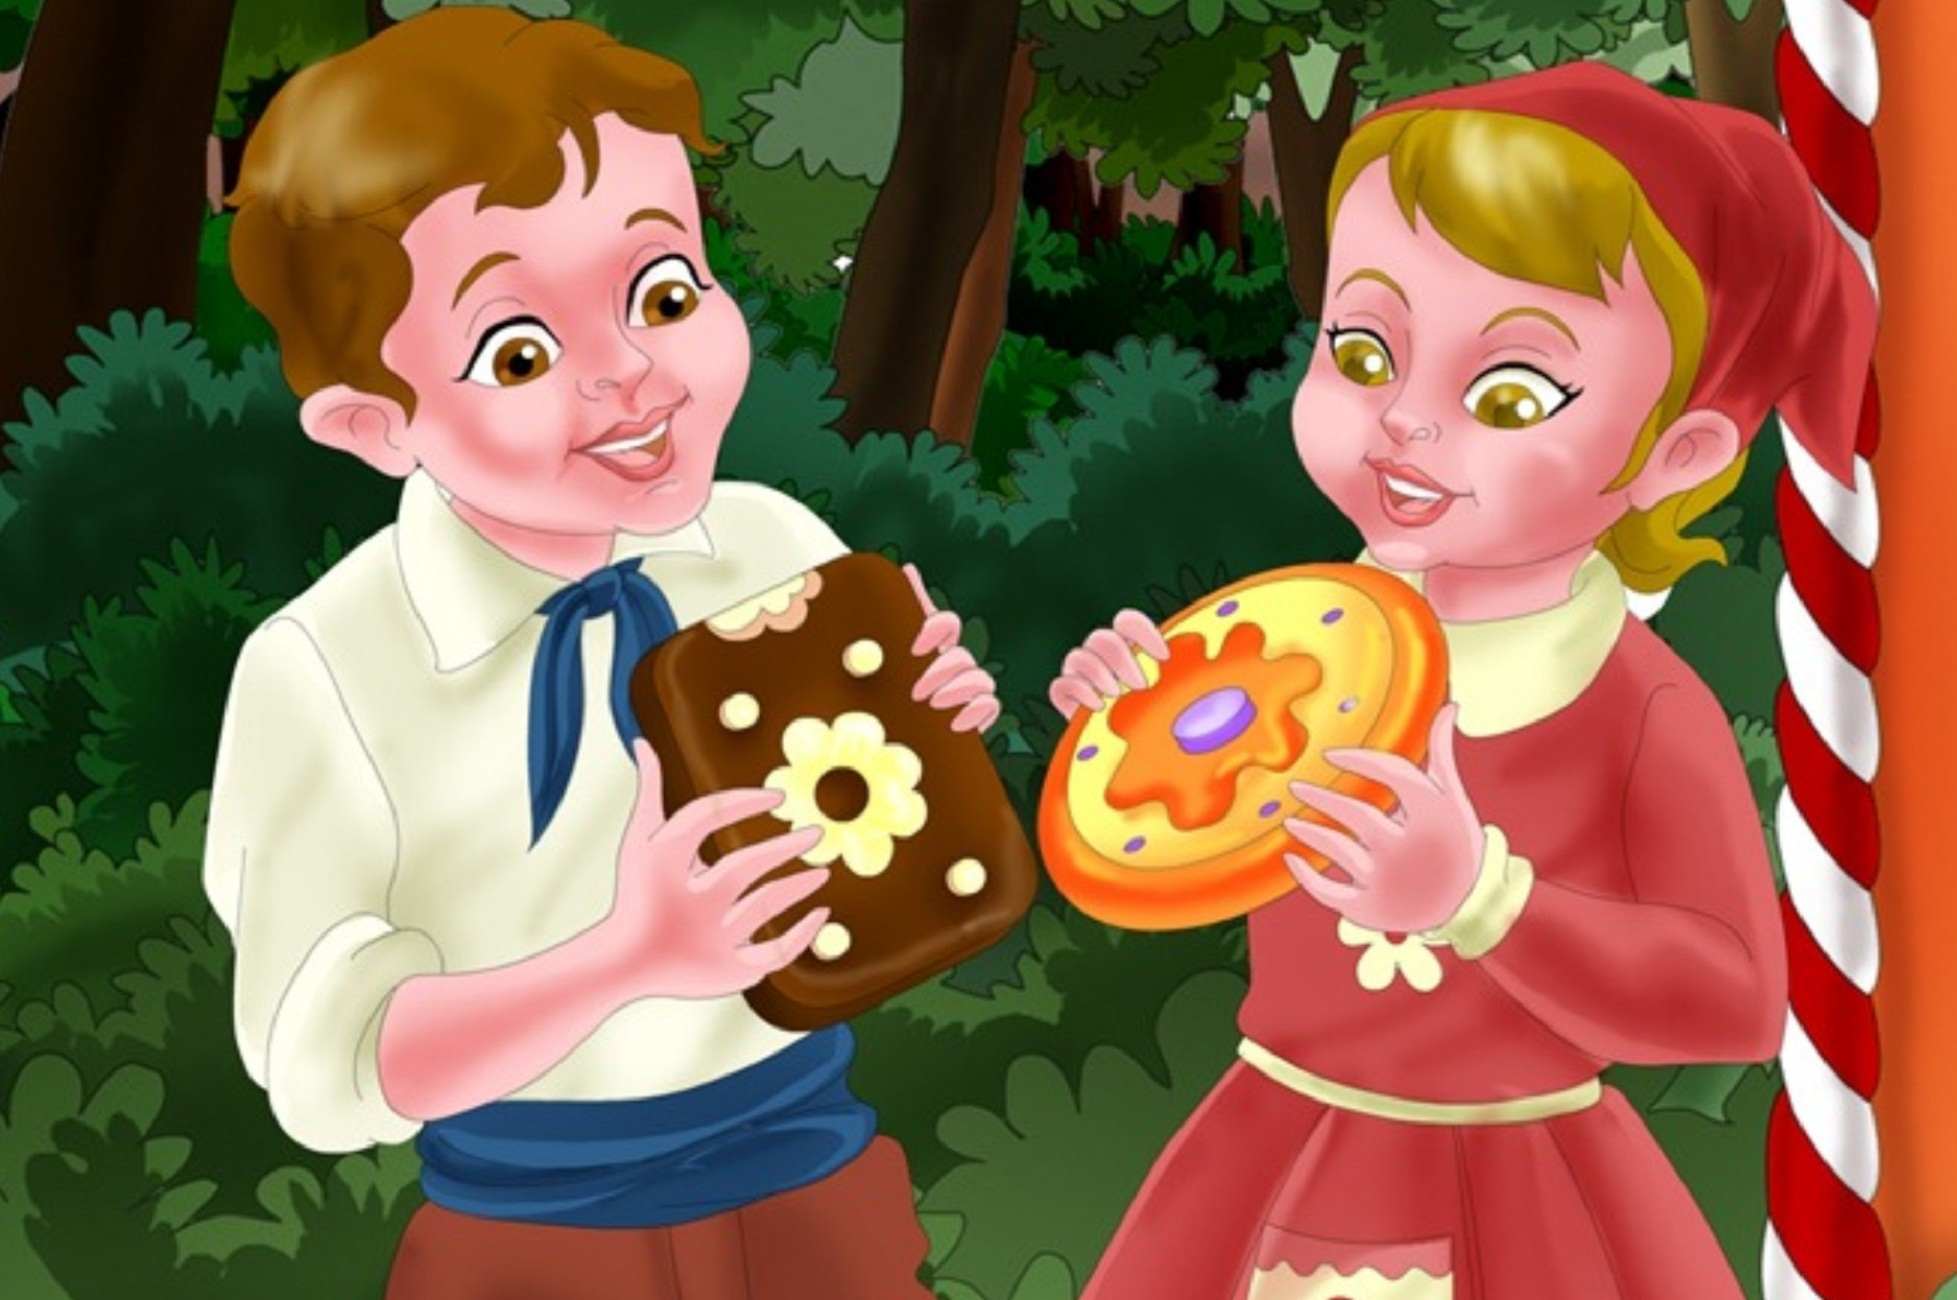 hansel-and-gretel-activities-story